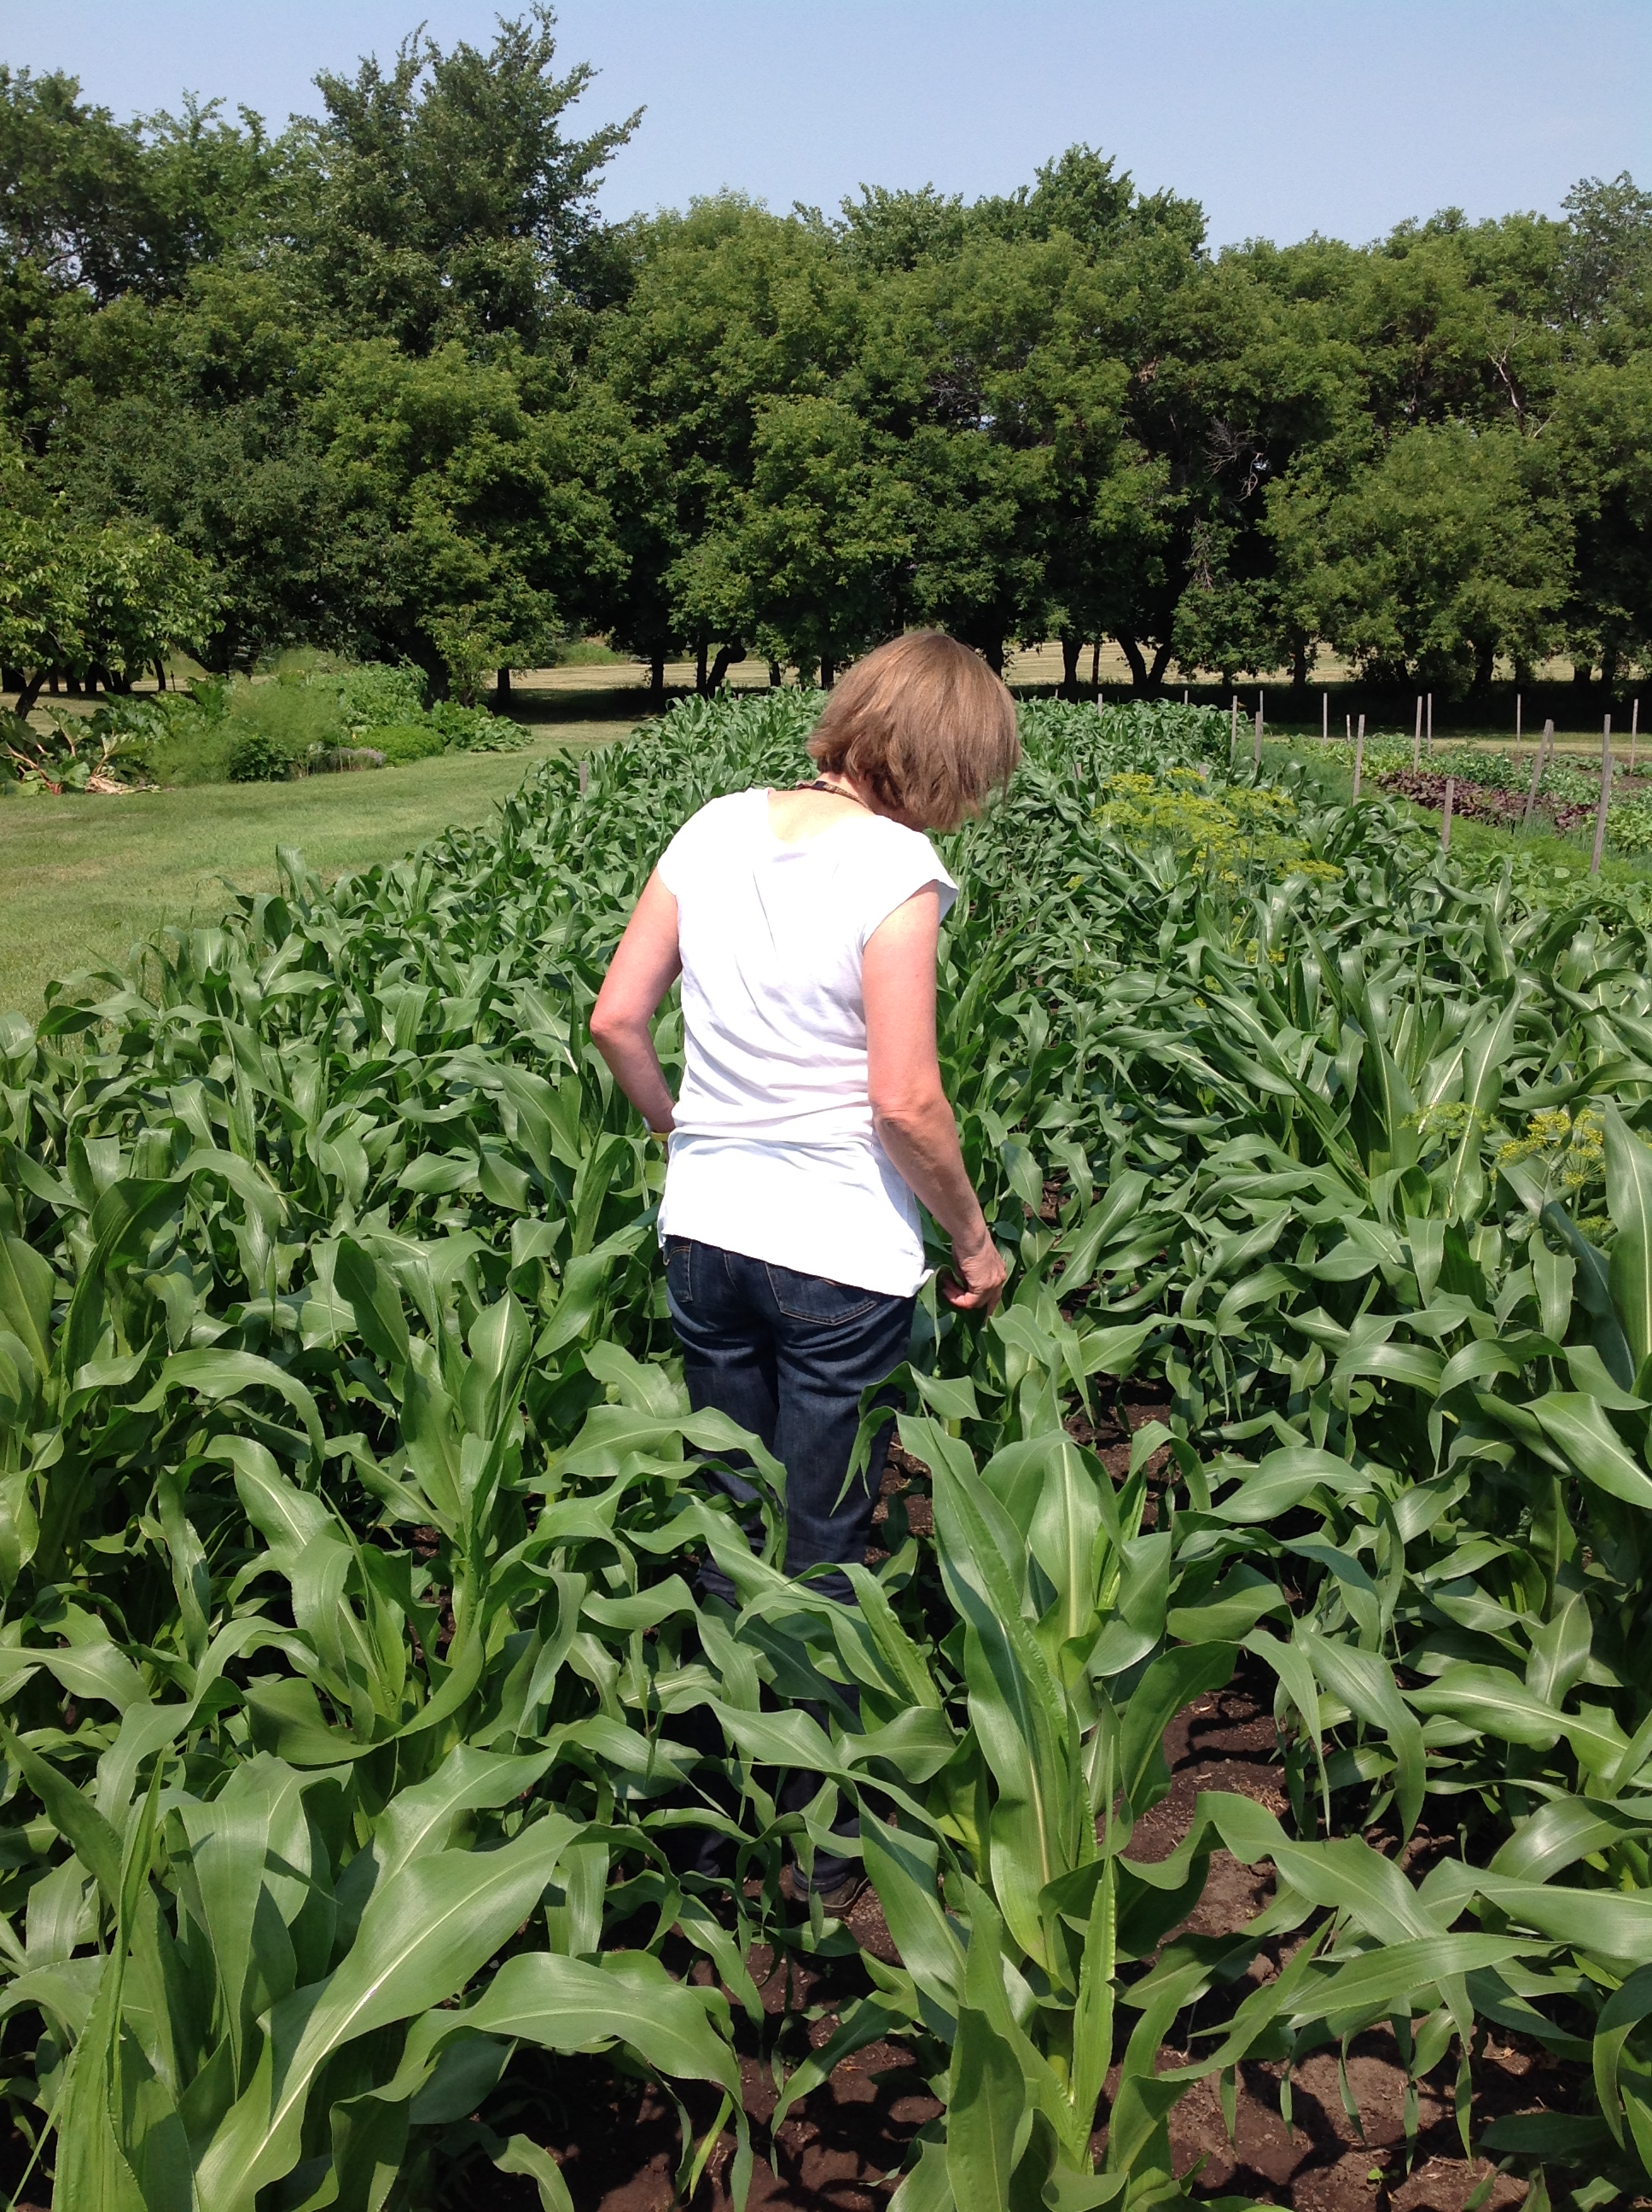 Normal plants should grow fast with dark green healthy leaves. Corn will tell you if it is hungry by turning very light green. If so, feed again.